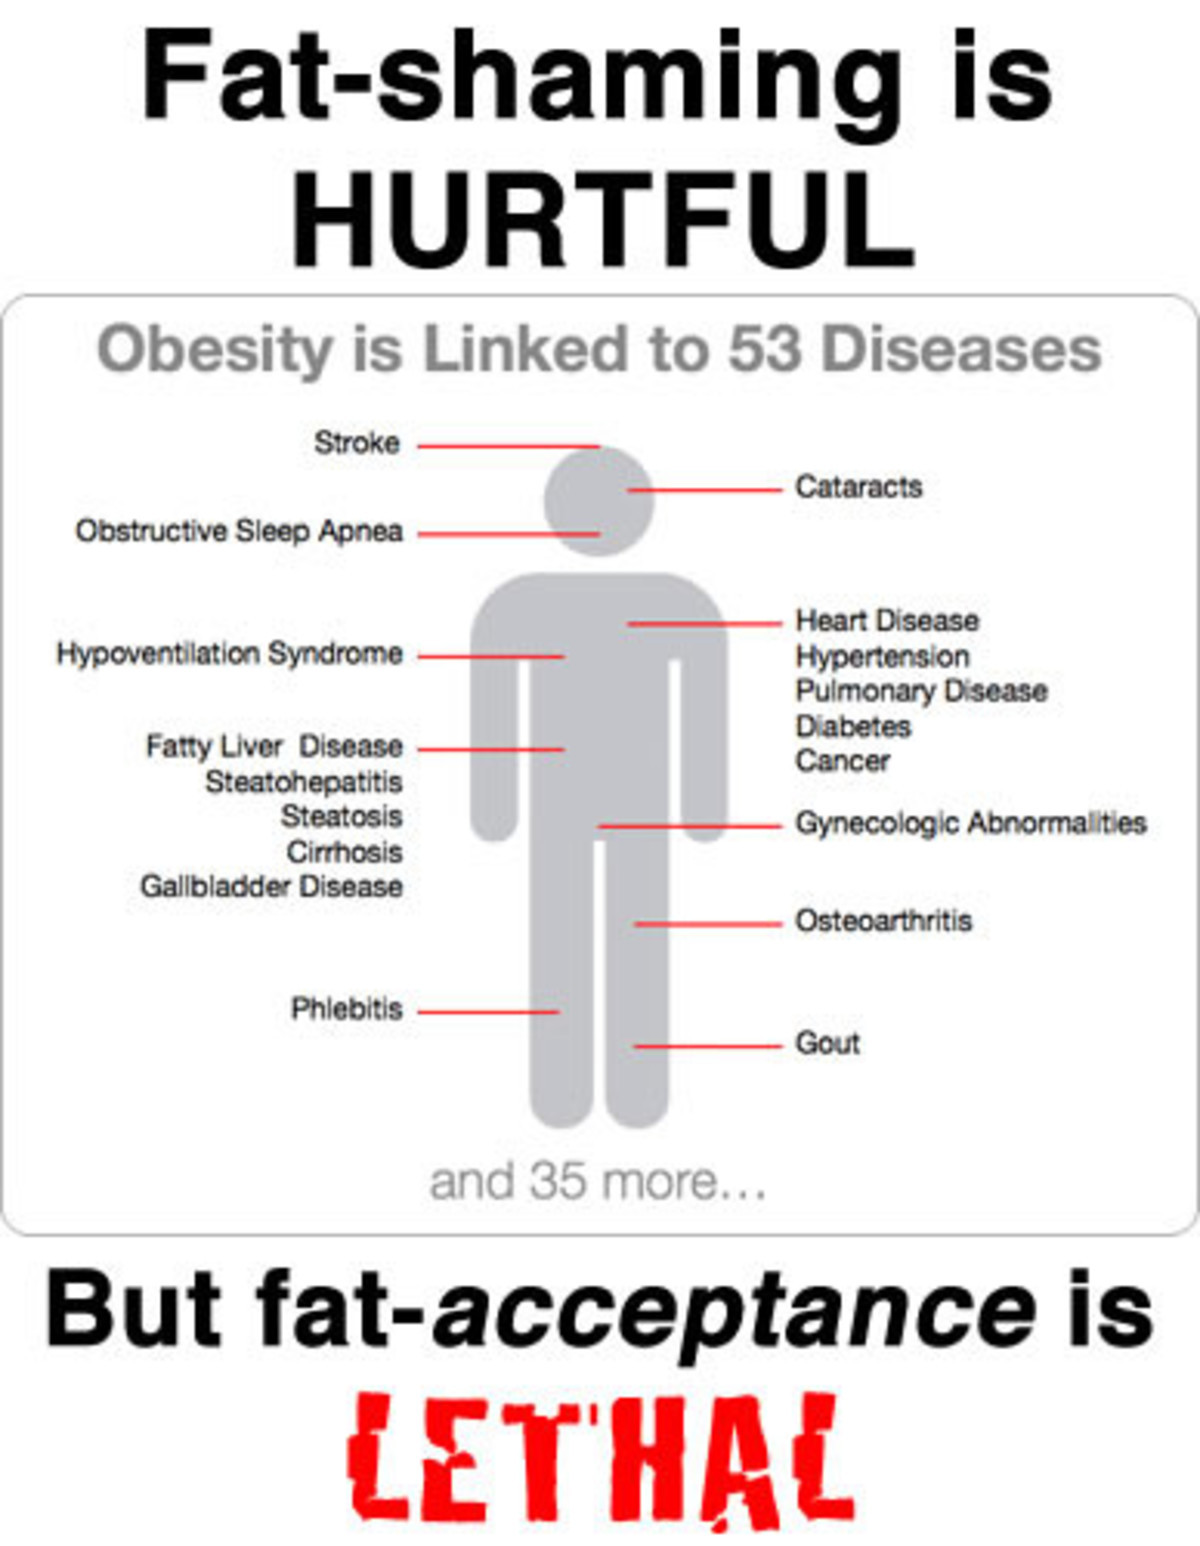 Fat Shaming. .. Being fat is not a good thing, that is obvious. Being slightly overweight is okay. Trying to get people to be fit and not be unhealthy is perfectly fine. What i